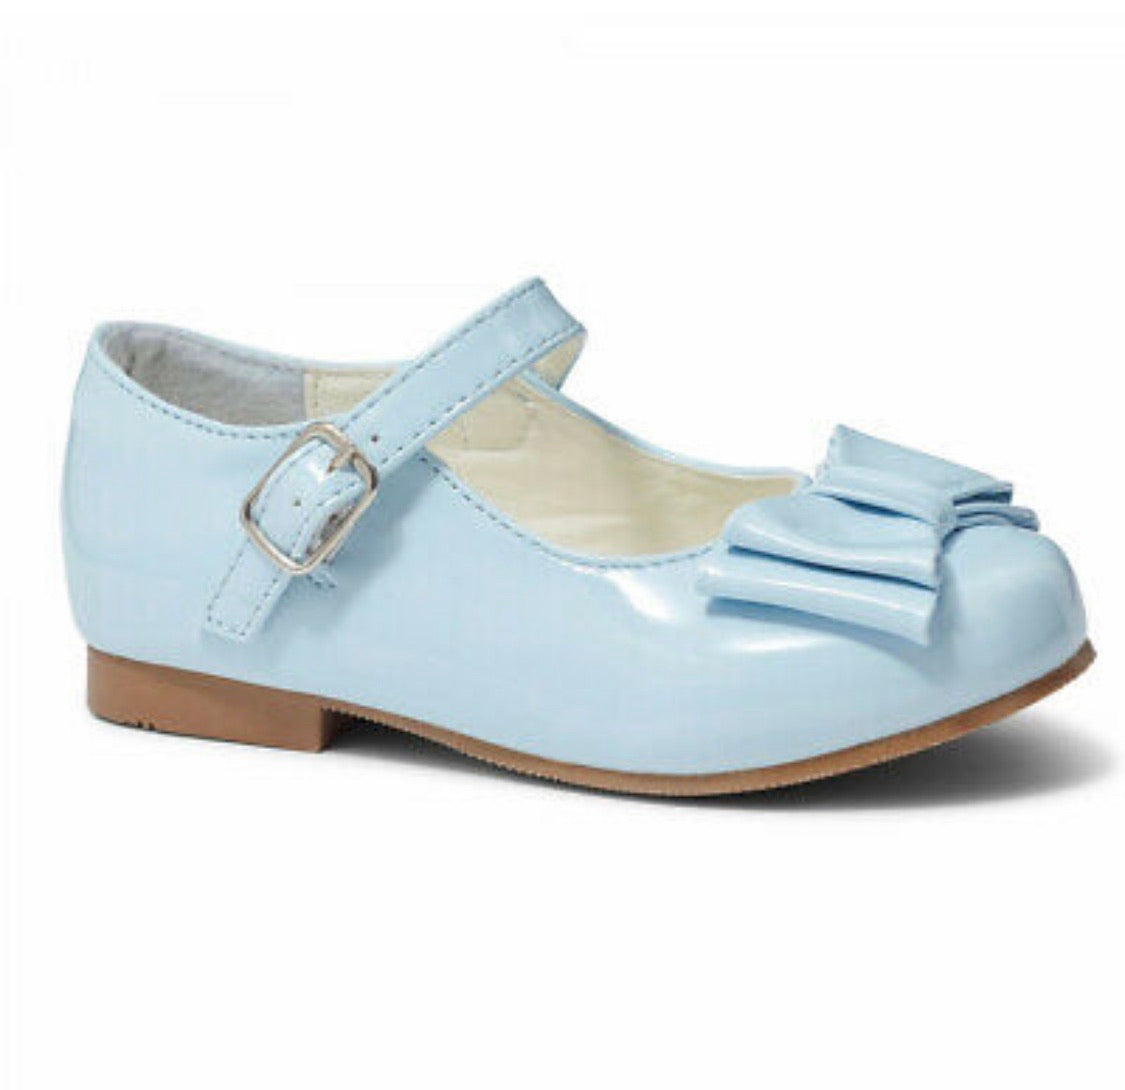 Special Offer Liya Sky Blue Bow Shoe